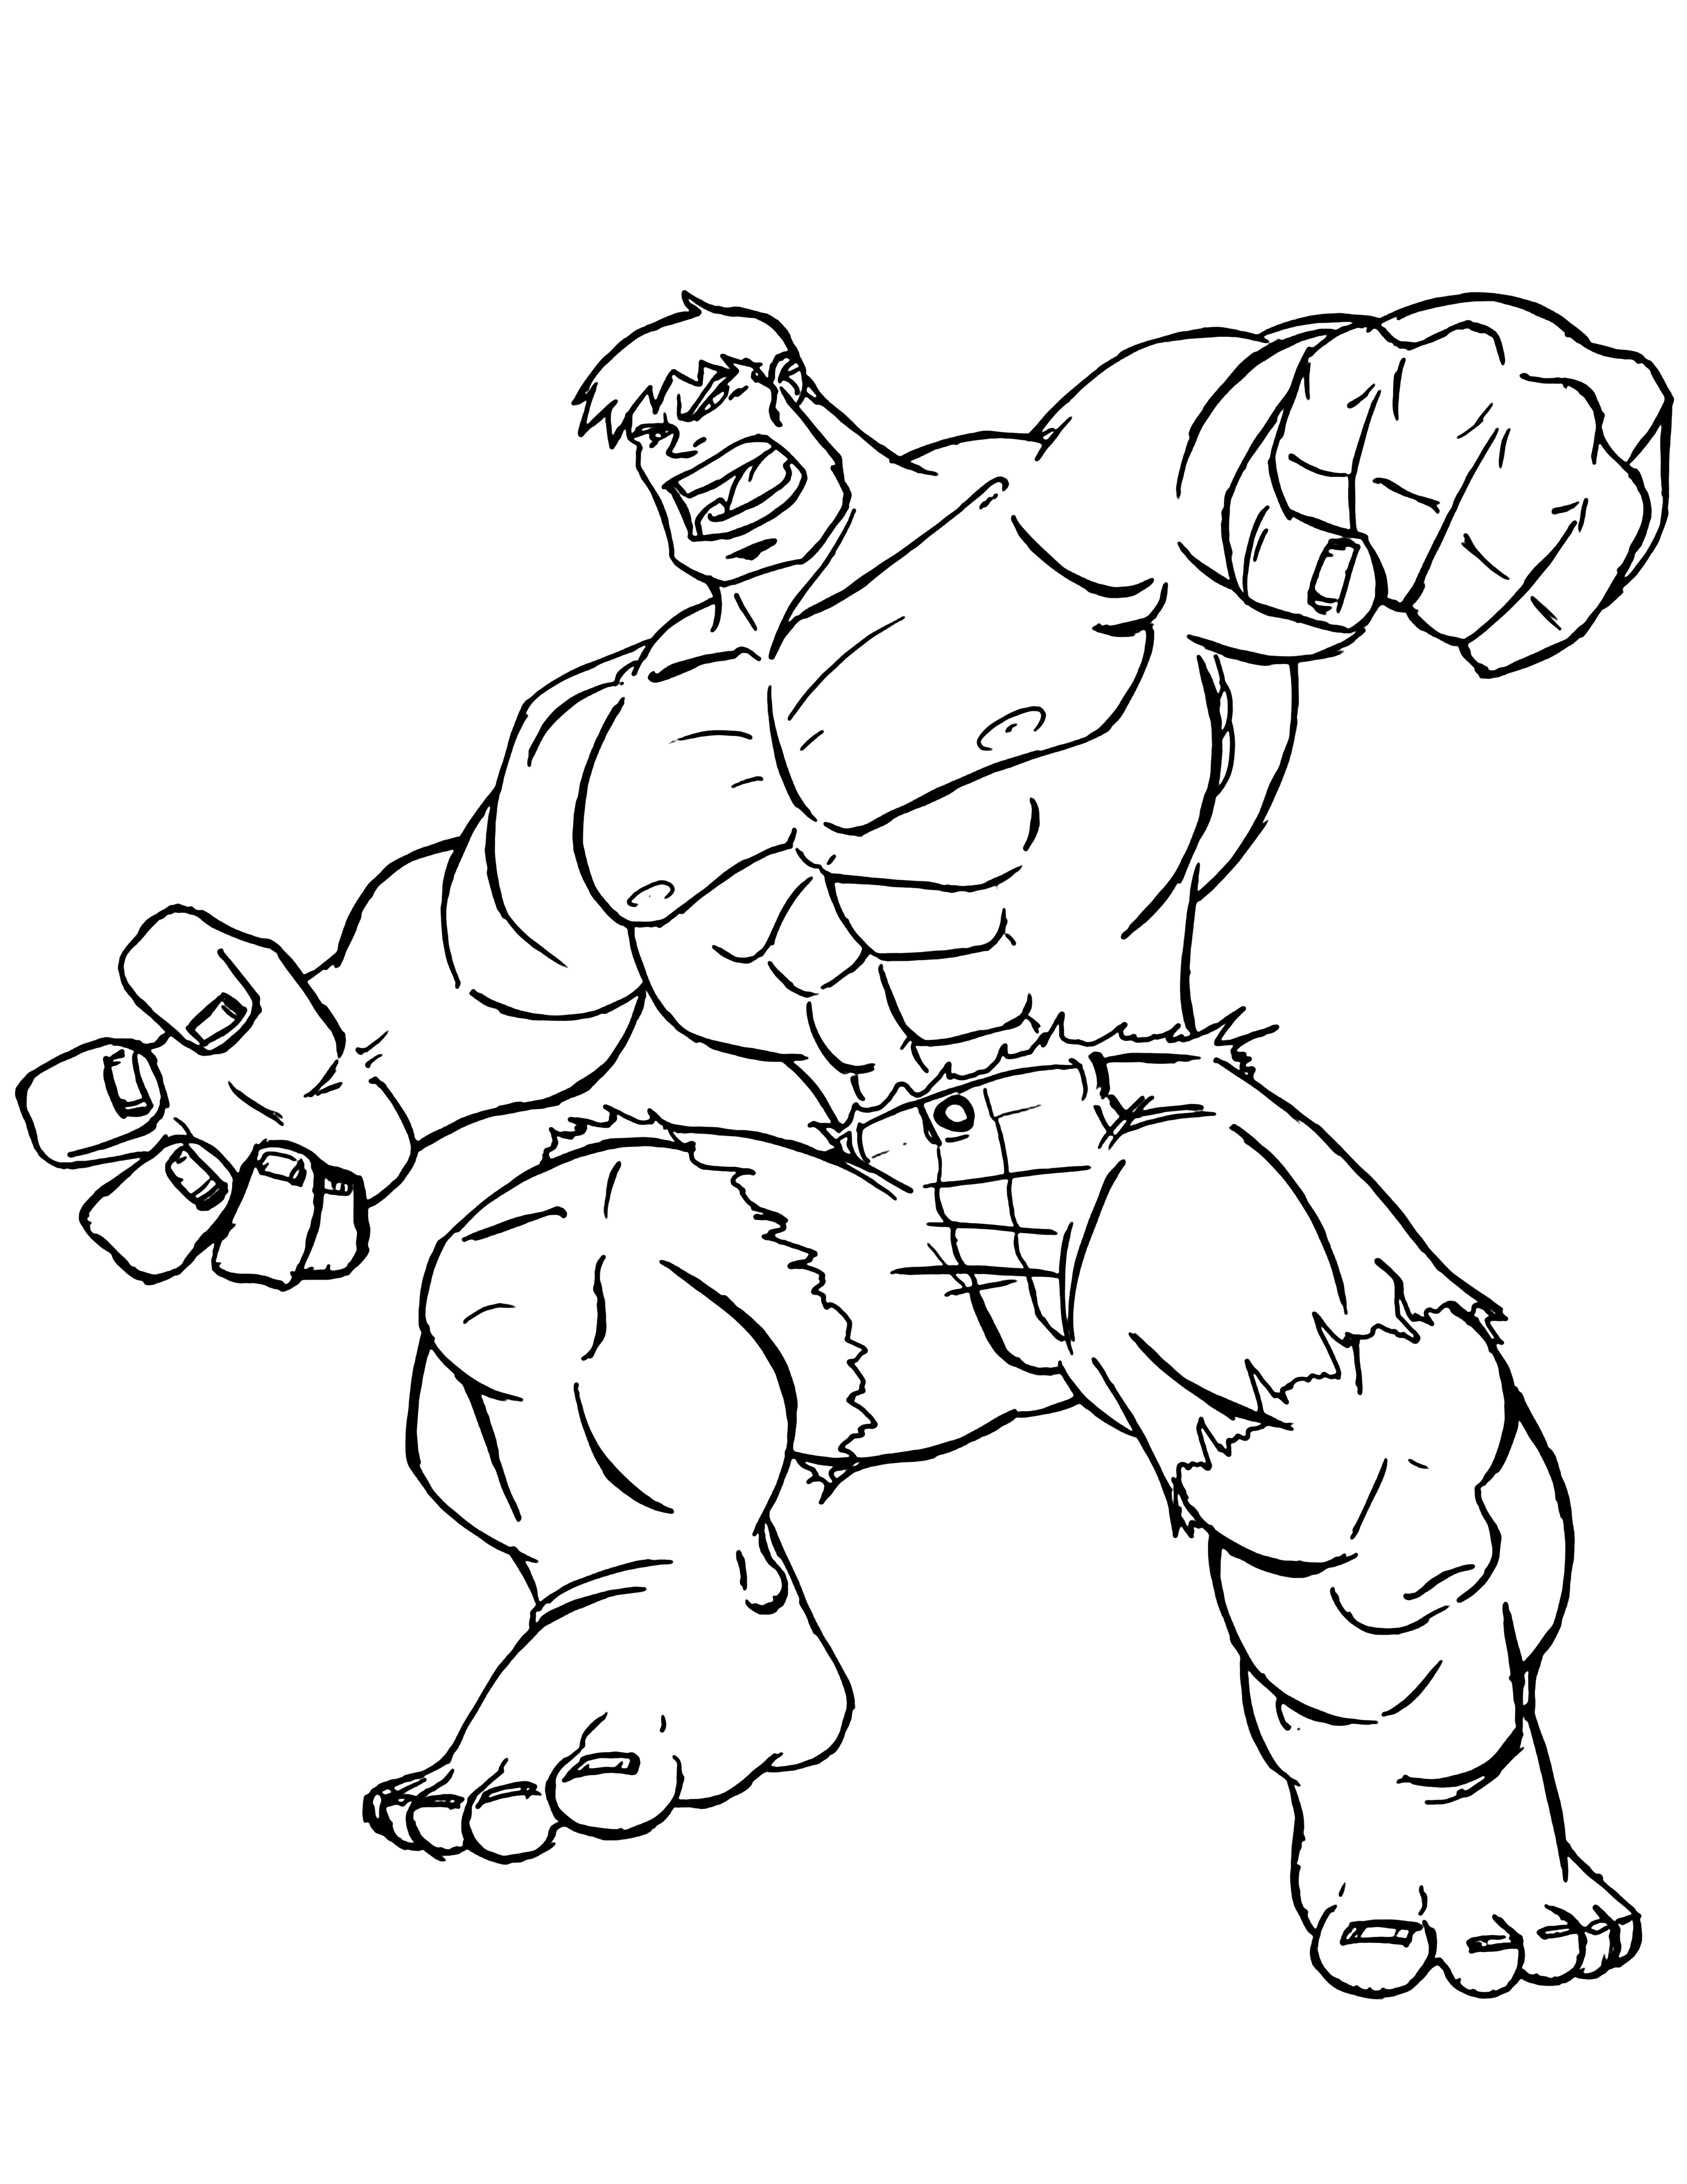 30 Hulk Coloring Pages For Kids Superhero Coloring Pages Coloring Pages For Kids Hulk Coloring Pages